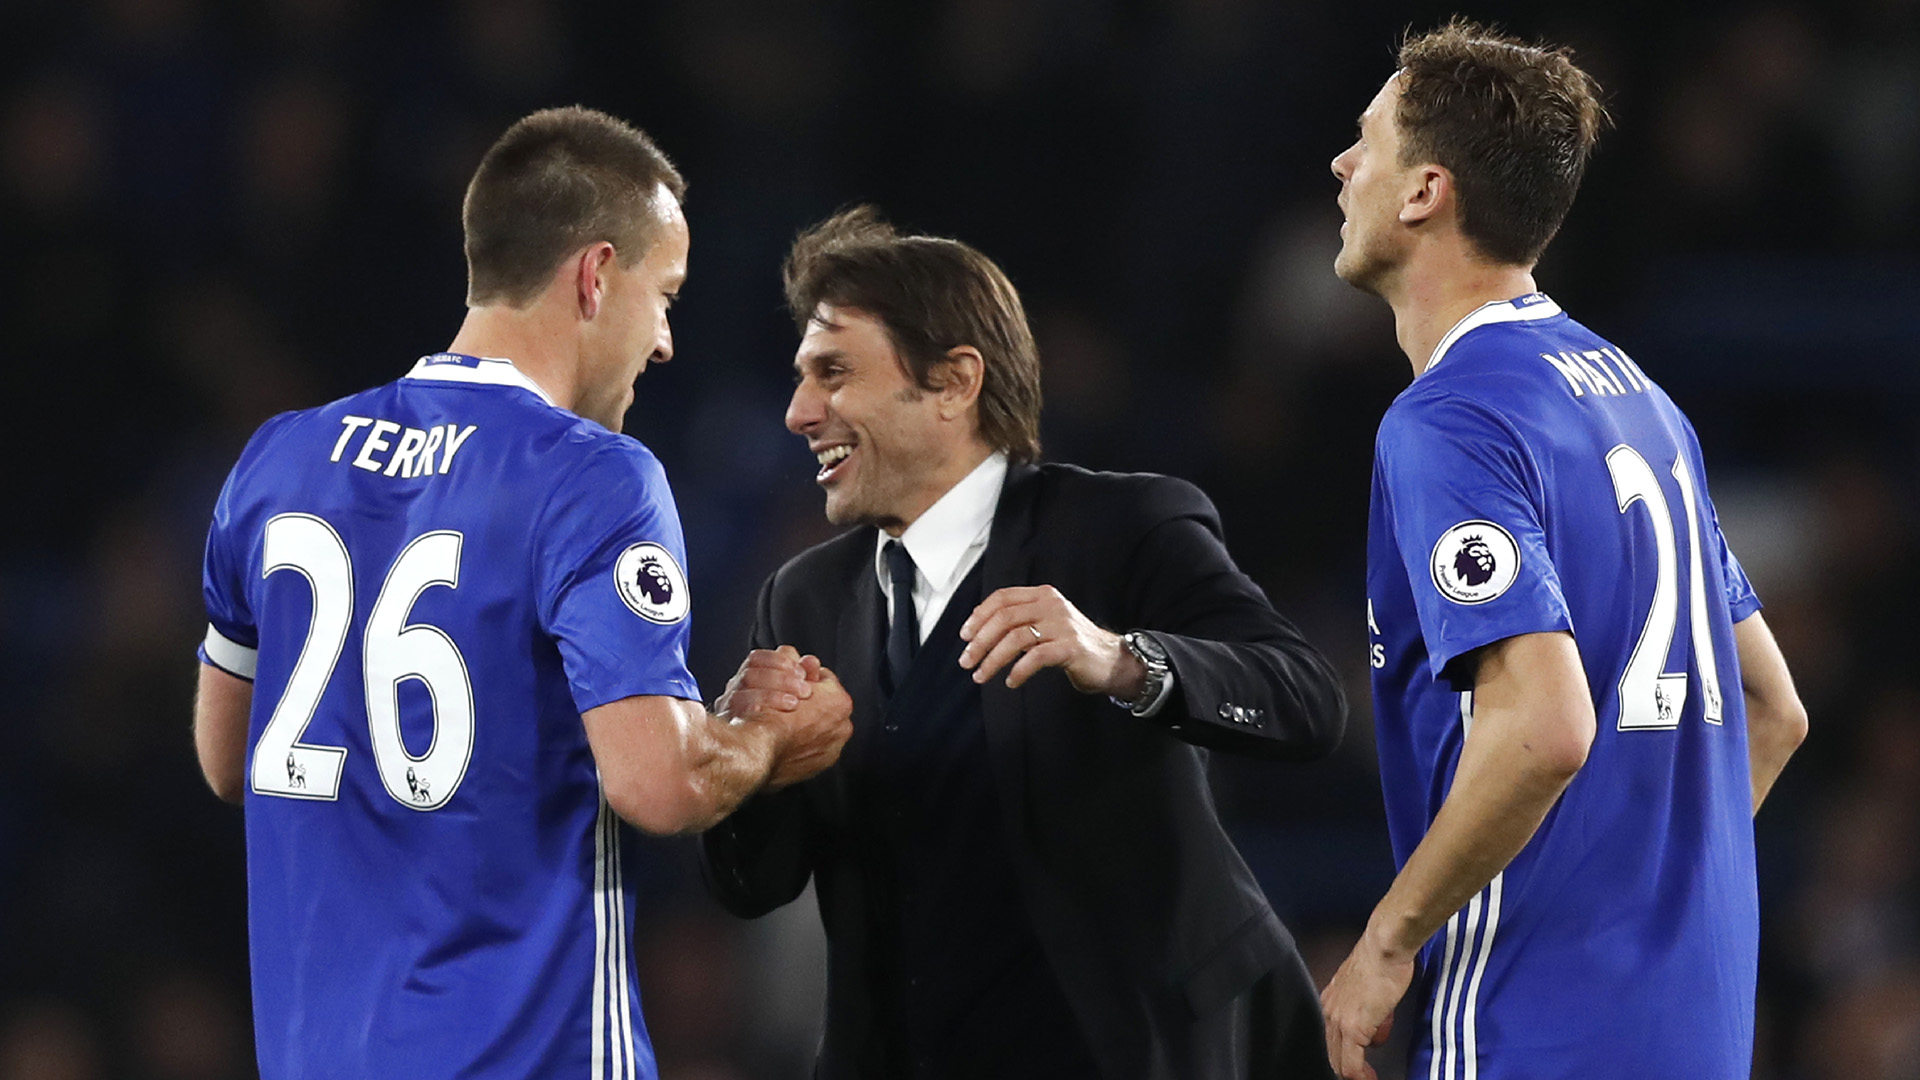 Antonio Conte John Terry Nemanja Matic Chelsea Middlesbrough Premier League 08052017